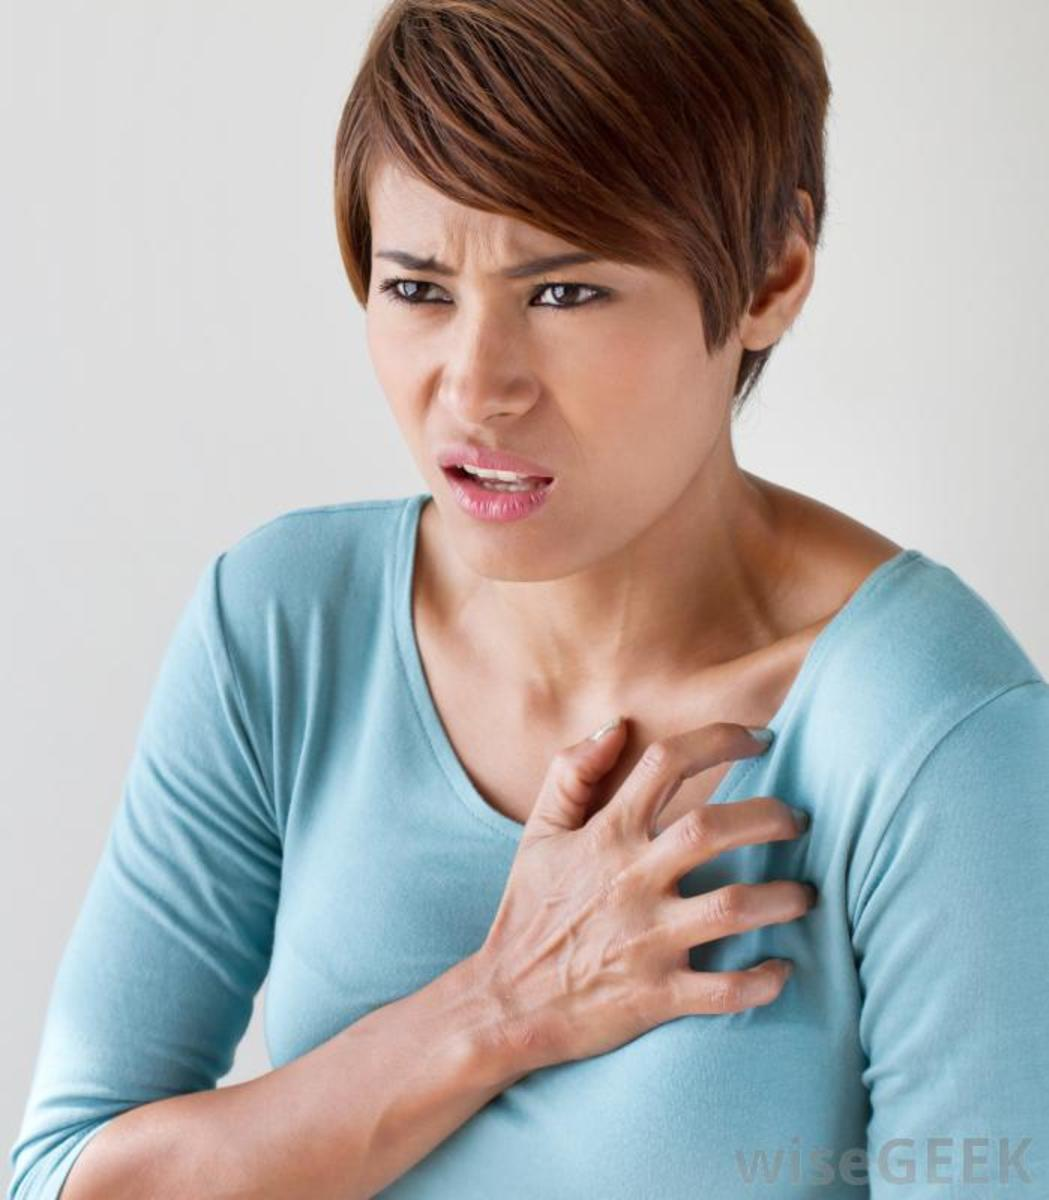 Have Chest Pains? It Could Just Be H Pylori.